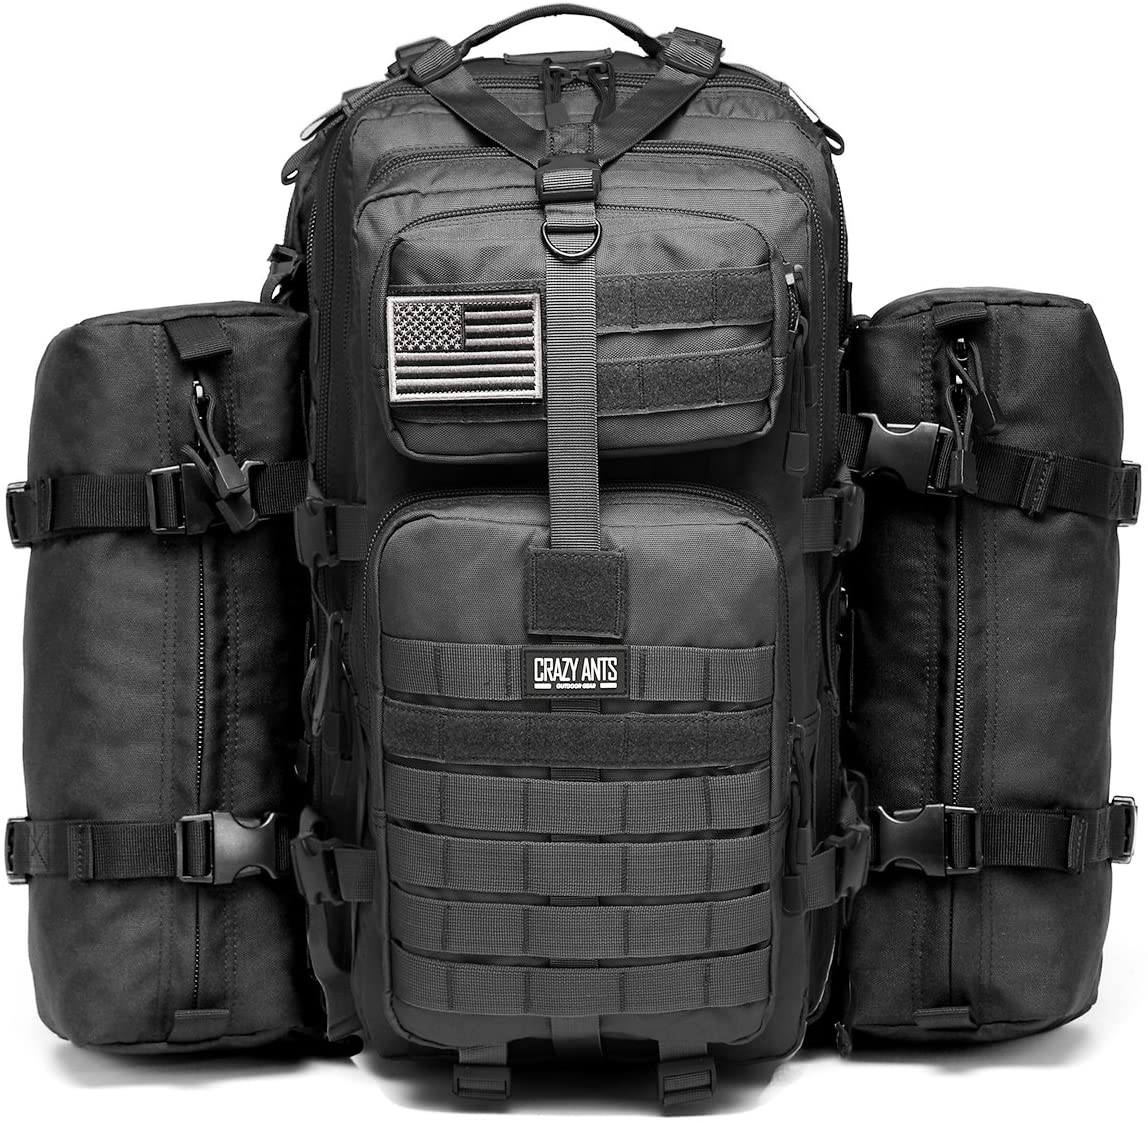 Crazy Ants Military Tactical Backpack; best survival backpack